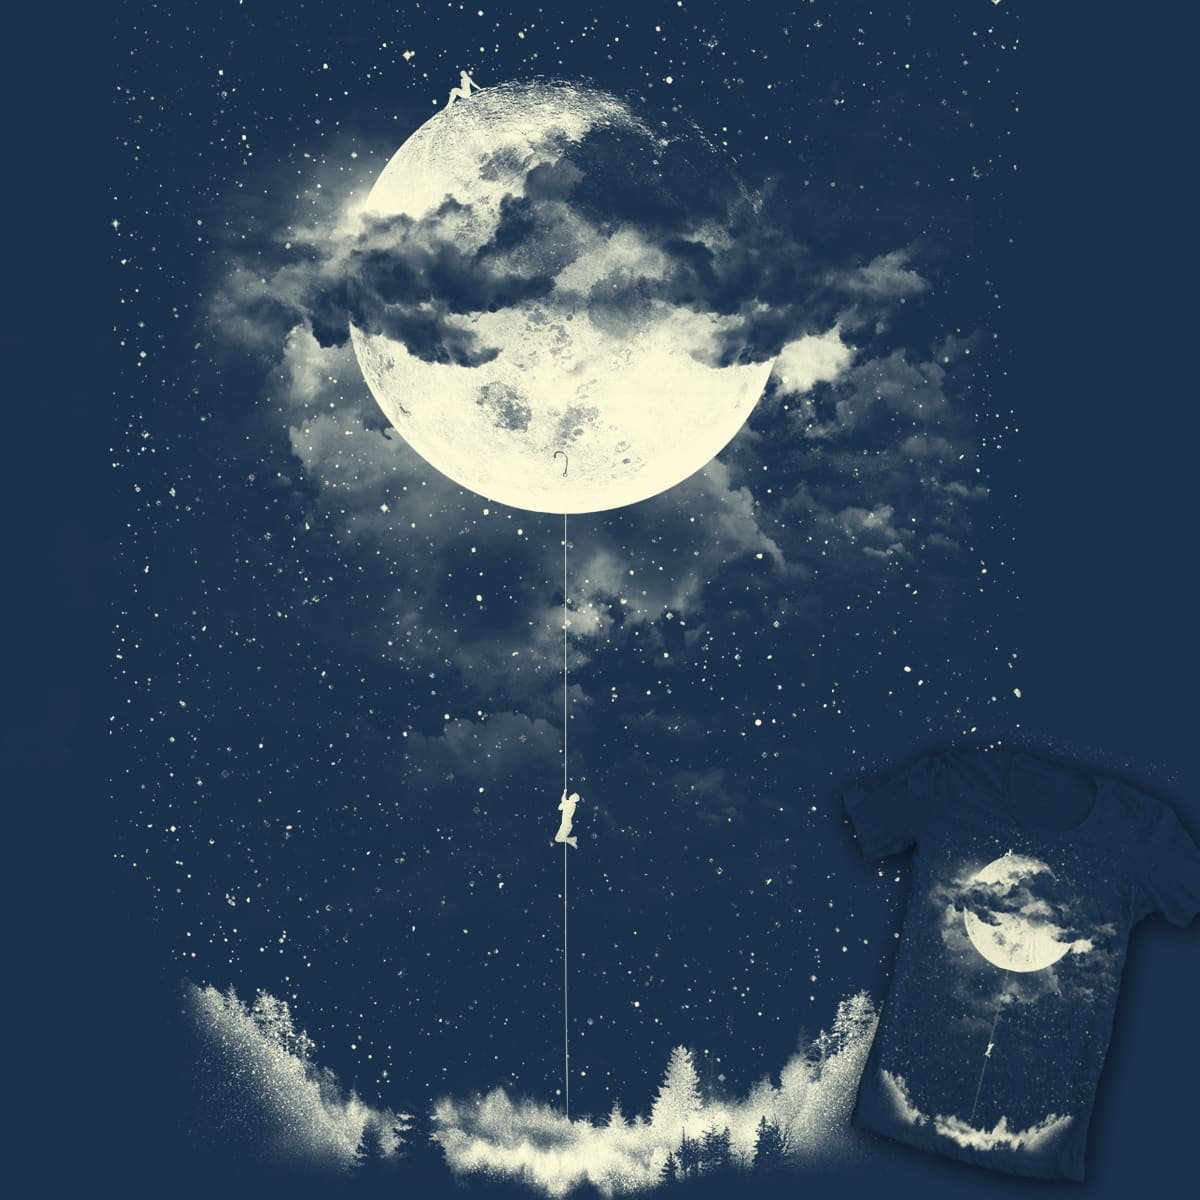 moon climber by los tomatos on Threadless